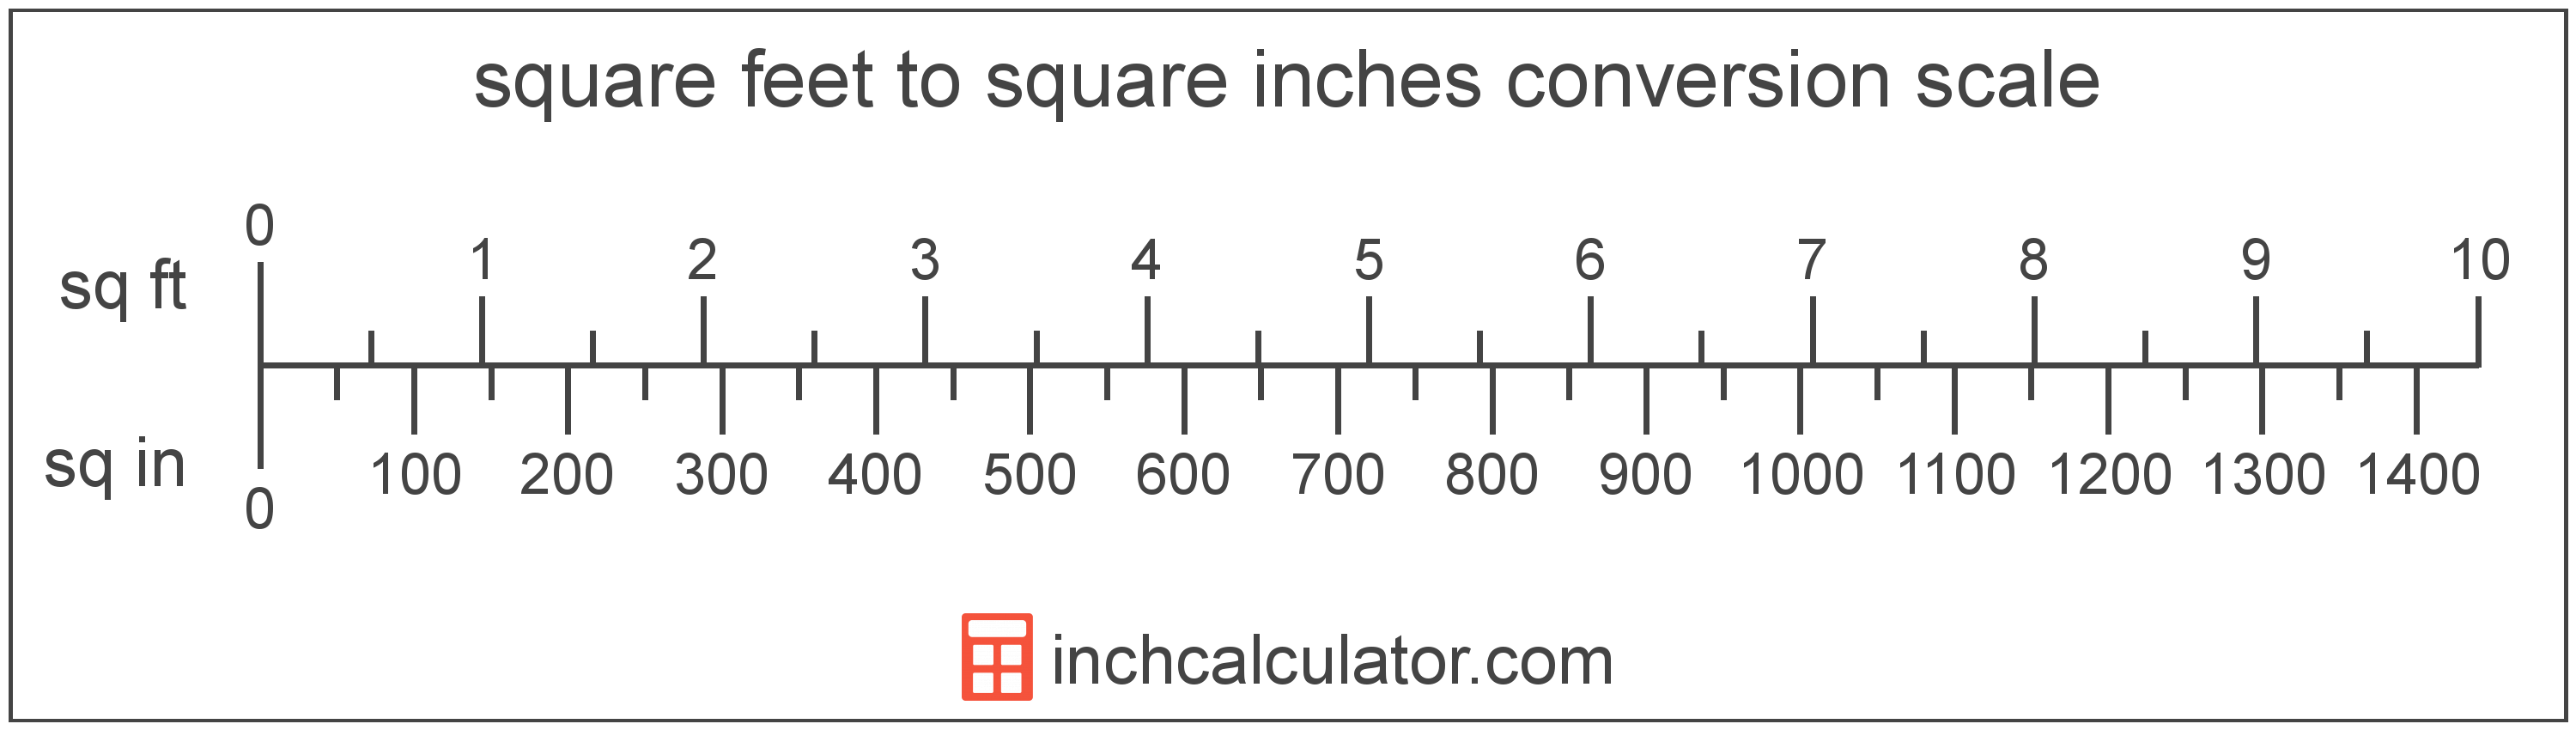 conversion scale showing square inches and equivalent square feet area values